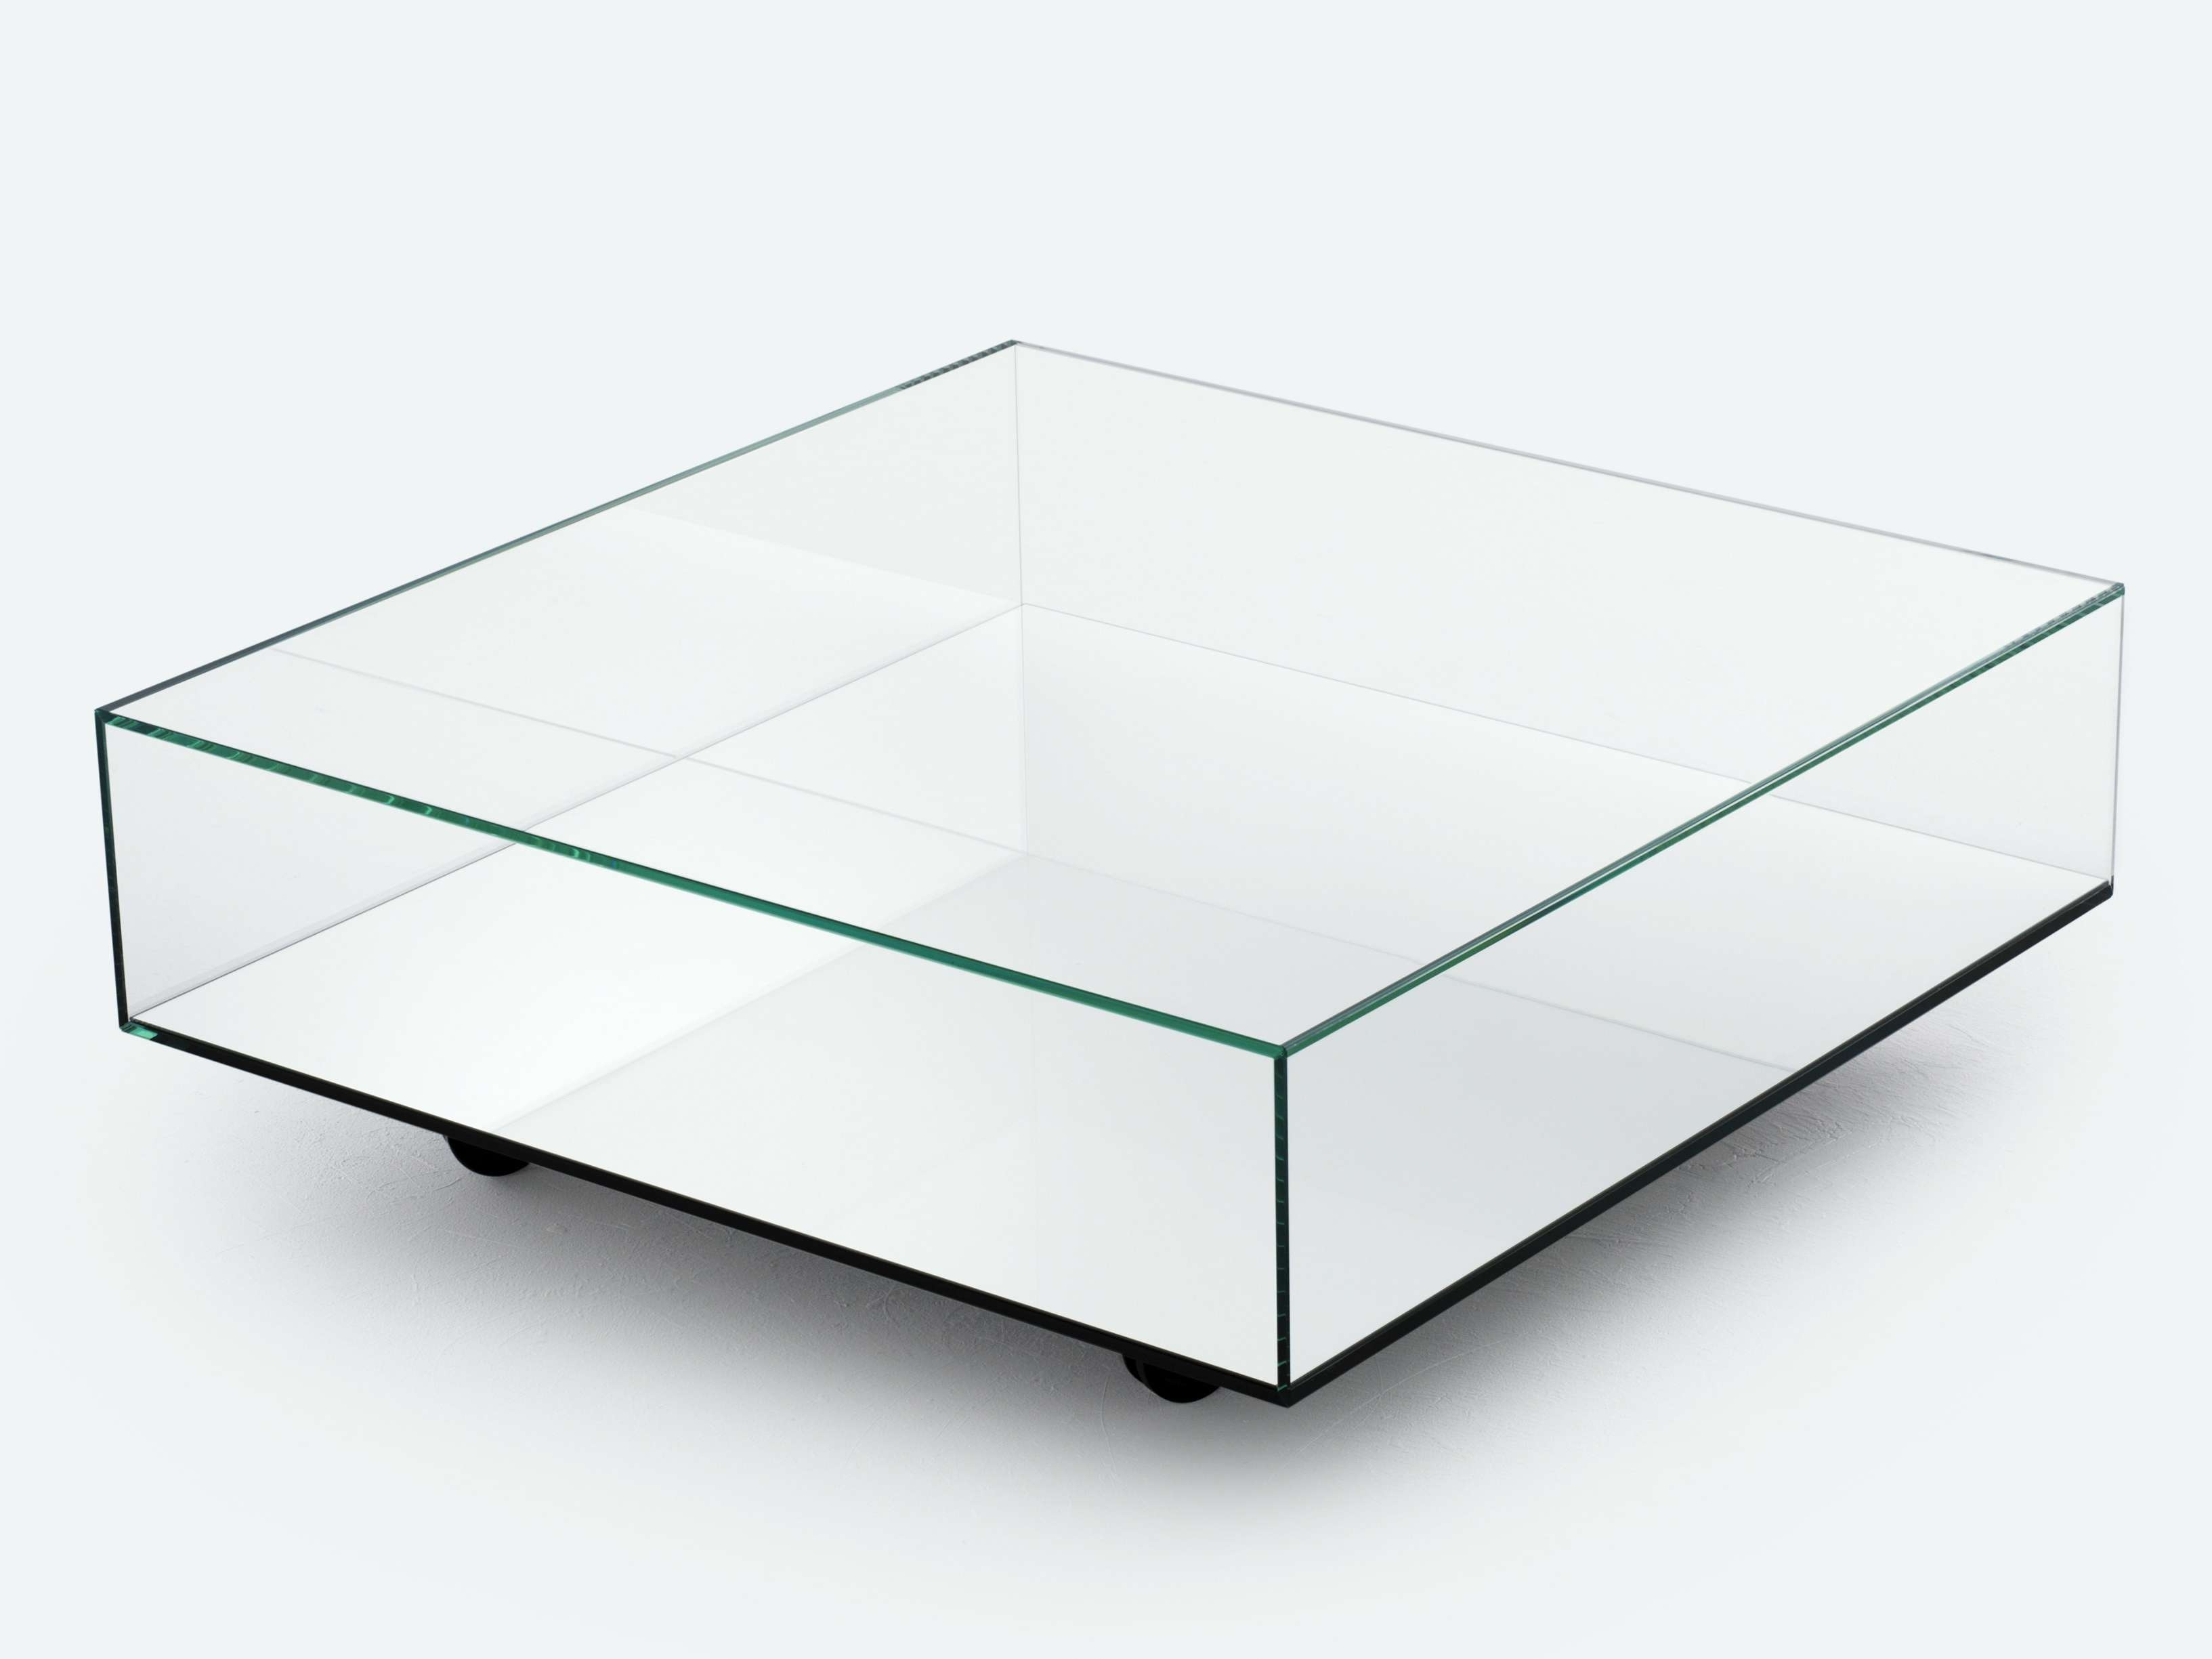 Square Low Profile Mirrored Glass Top Coffe Table With Storage And Regarding Most Popular Low Coffee Tables With Storage (View 19 of 20)